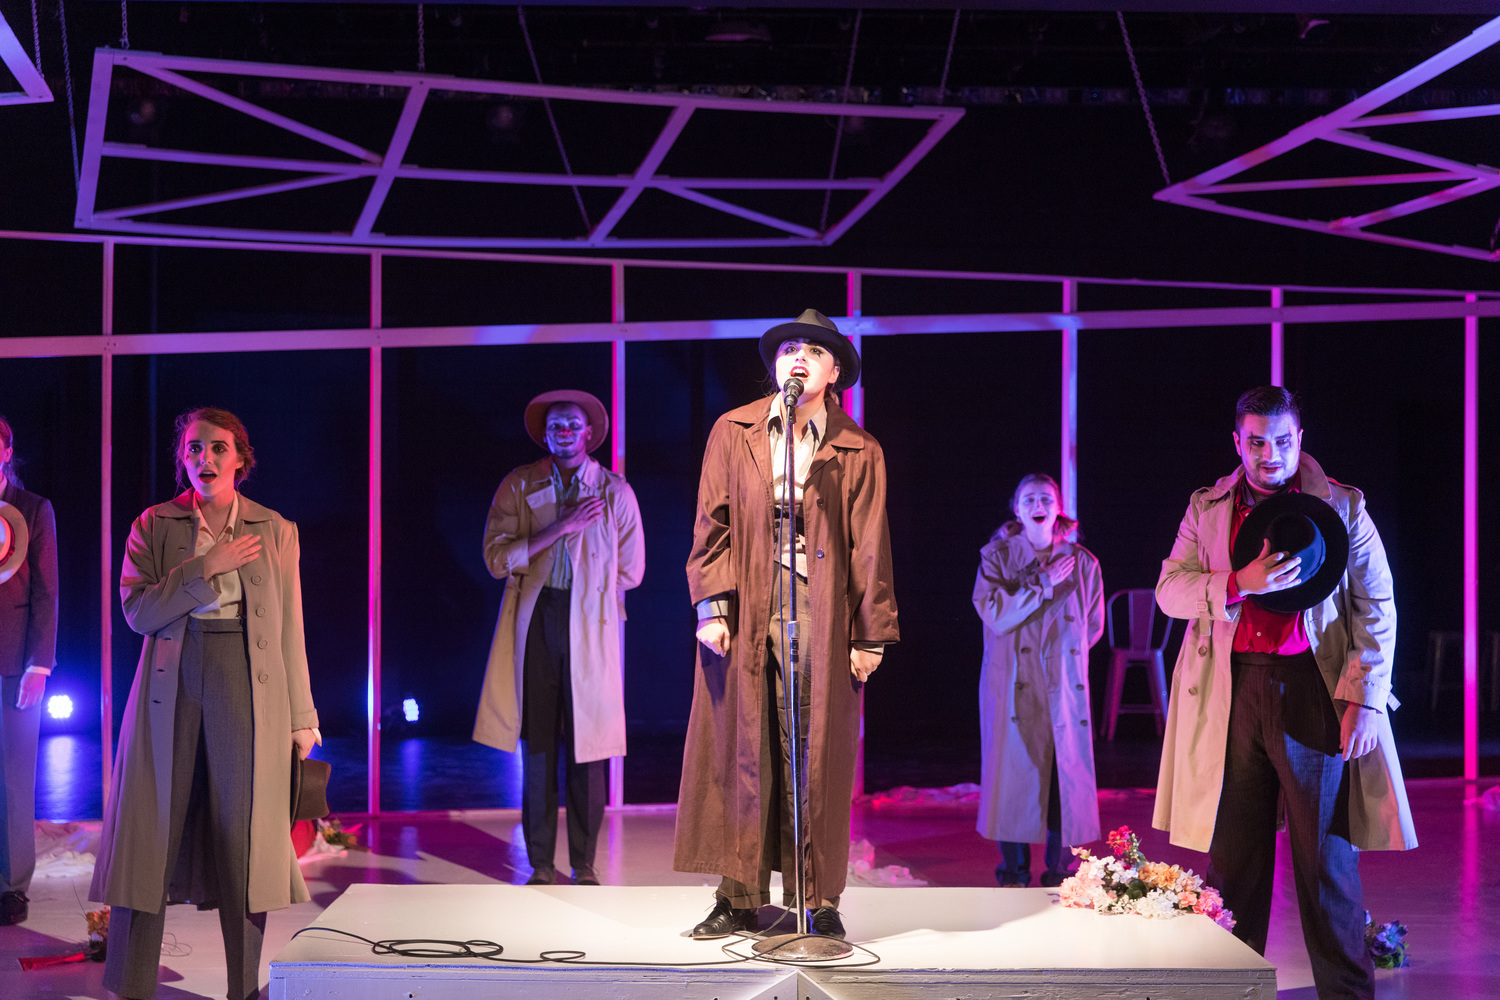 BWW Review: THE RESISTIBLE RISE OF ARTURO UI at Westmont Theatre Department